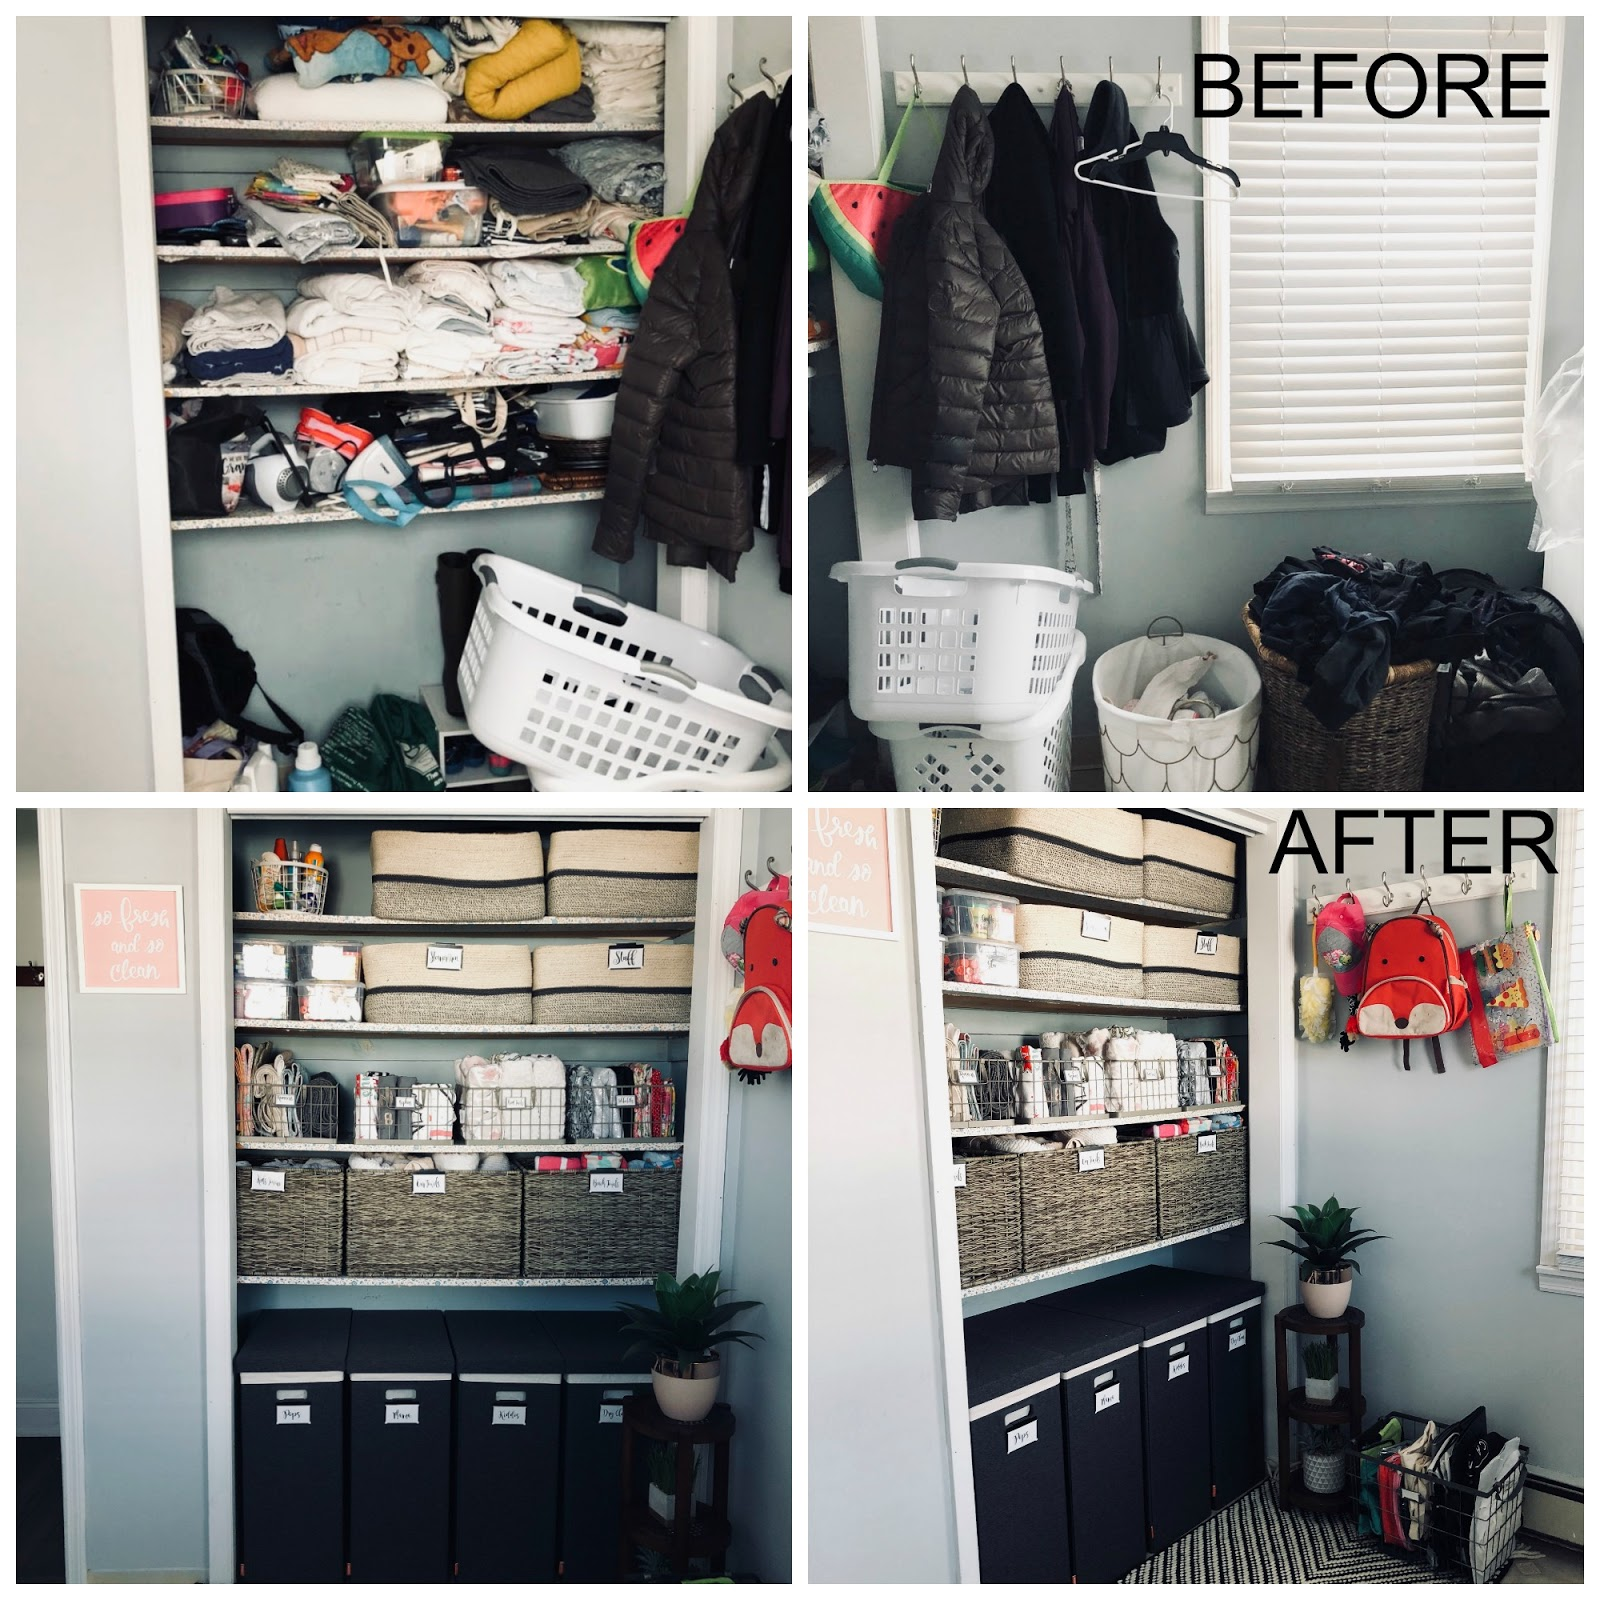 tarkett lay laundry ideas organization baby room